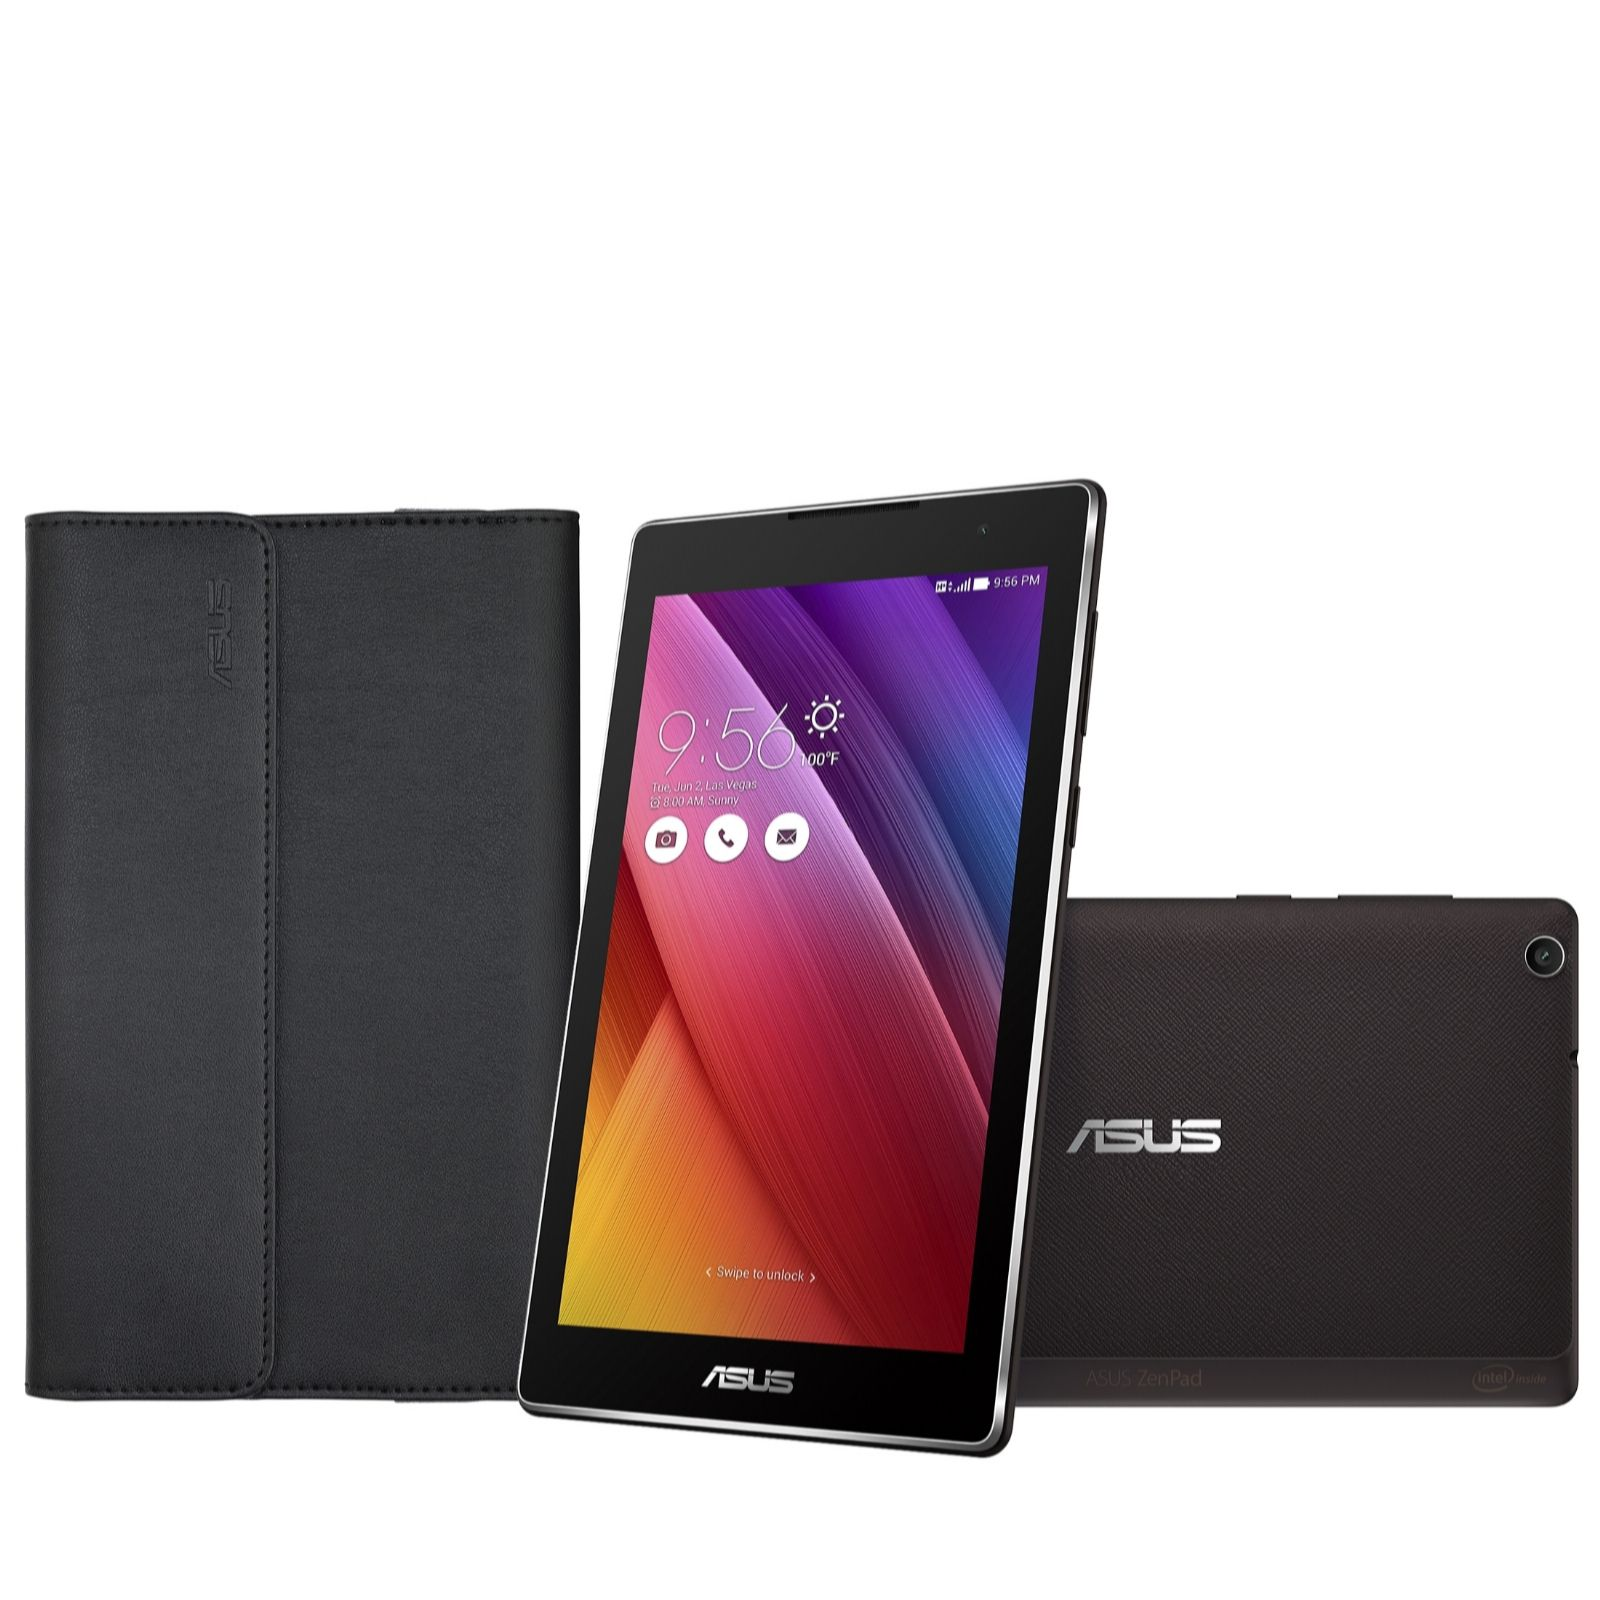 "Asus ZenPad C 7.0"" Dual SIM Android Smartphone with Fitted Case - 507112"